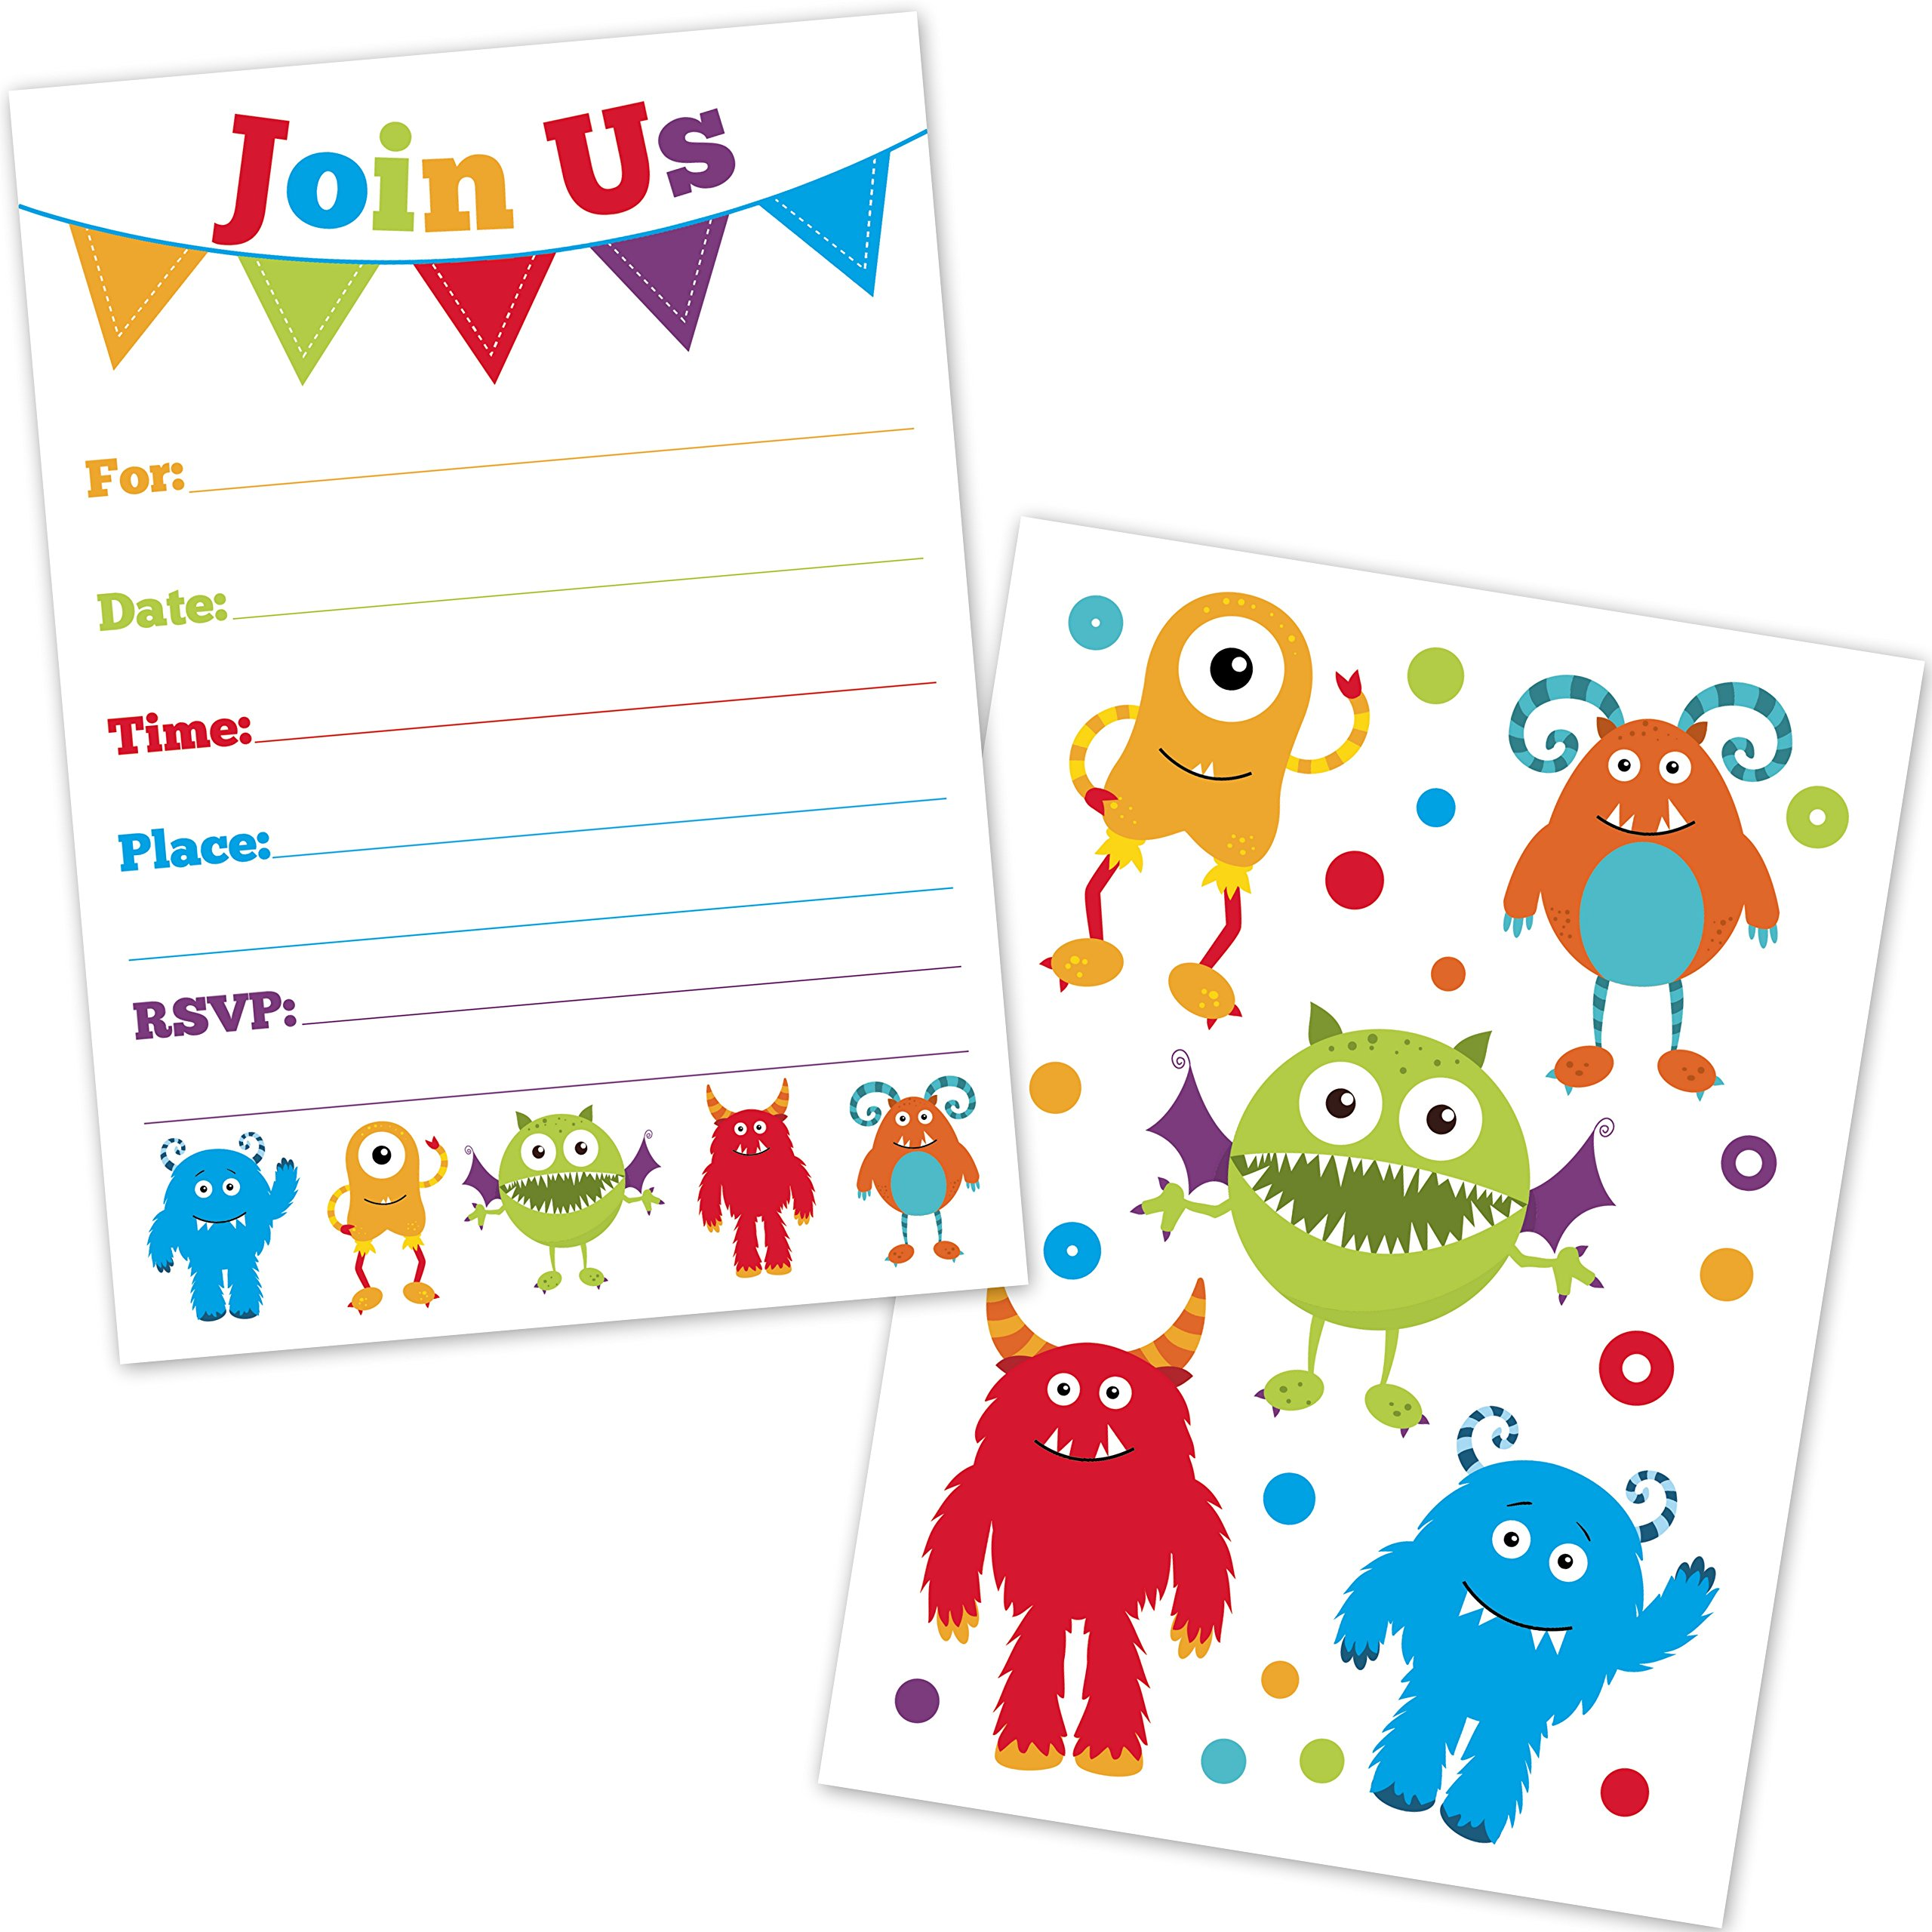 Cute Monster Birthday Party Invitations for Kids - (20 Count with Envelopes)